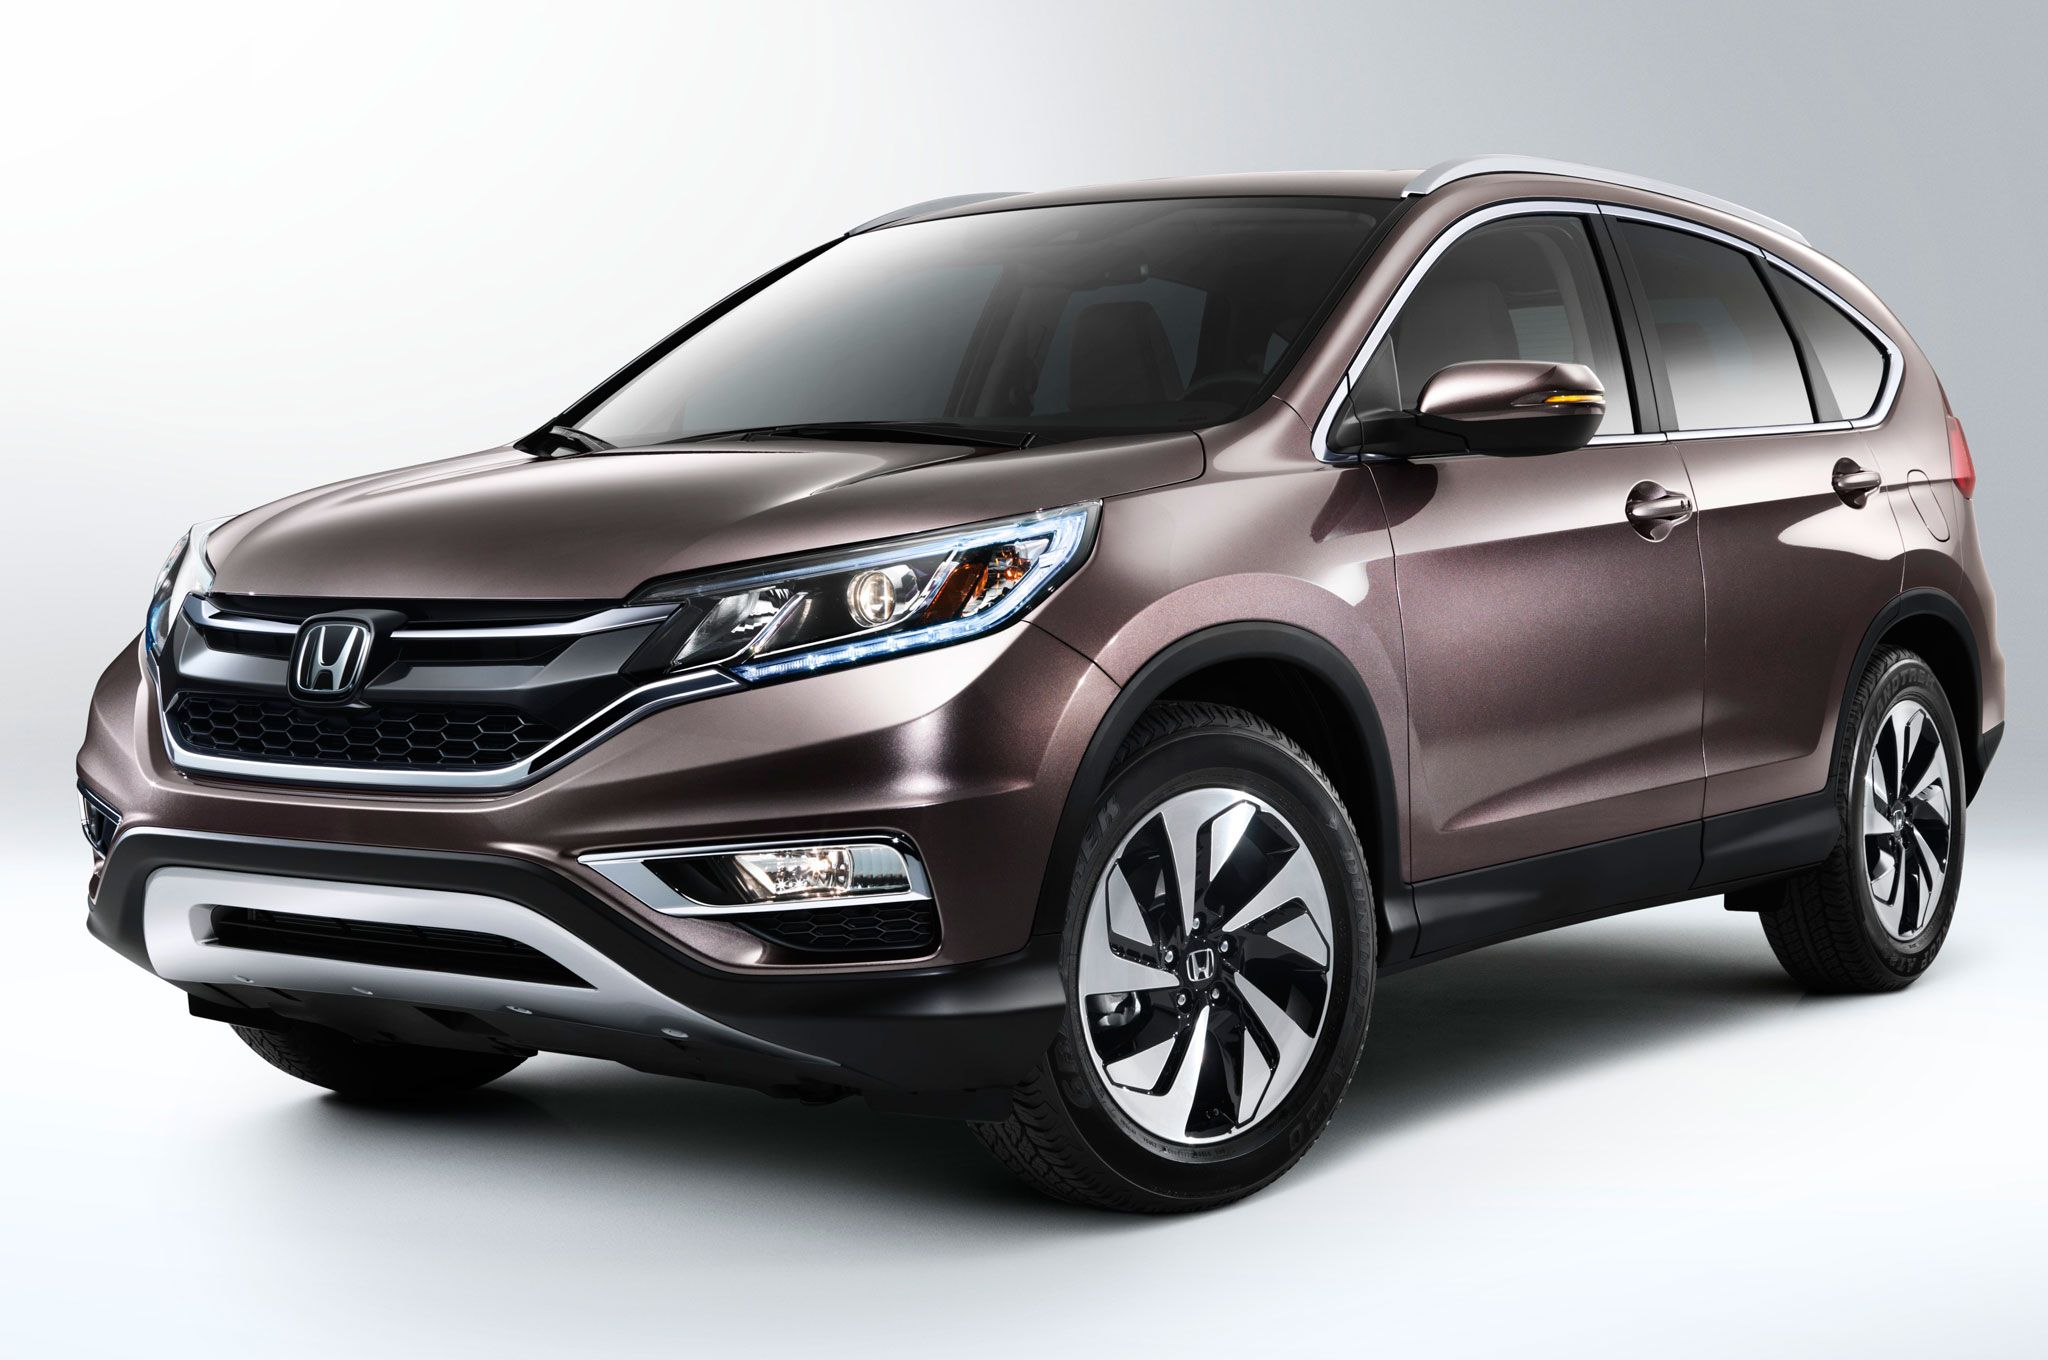 2015 honda cr v front three quarter in